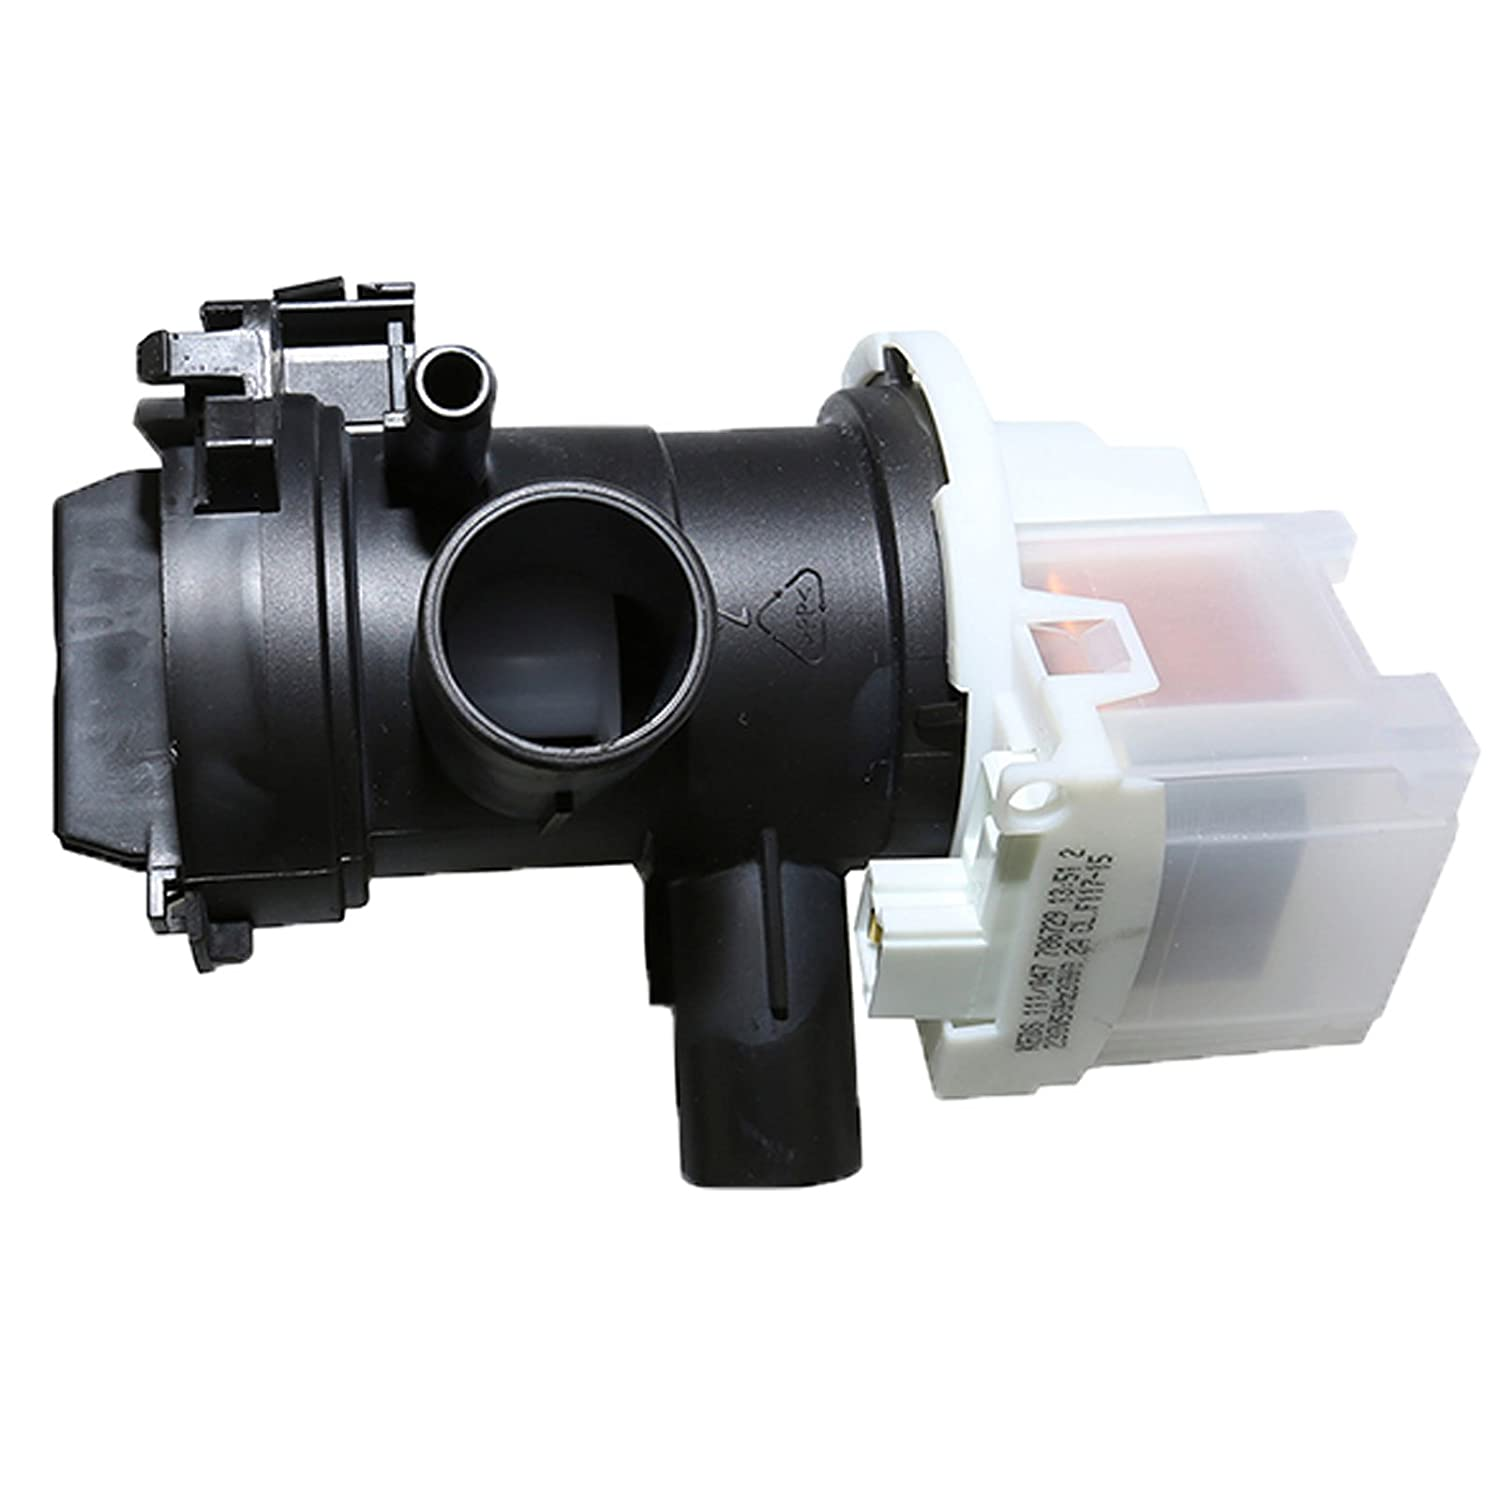 First4Spares Replacement Water Drain Pump for Bosch Siemens WAP & WAQ Series Washing Machines